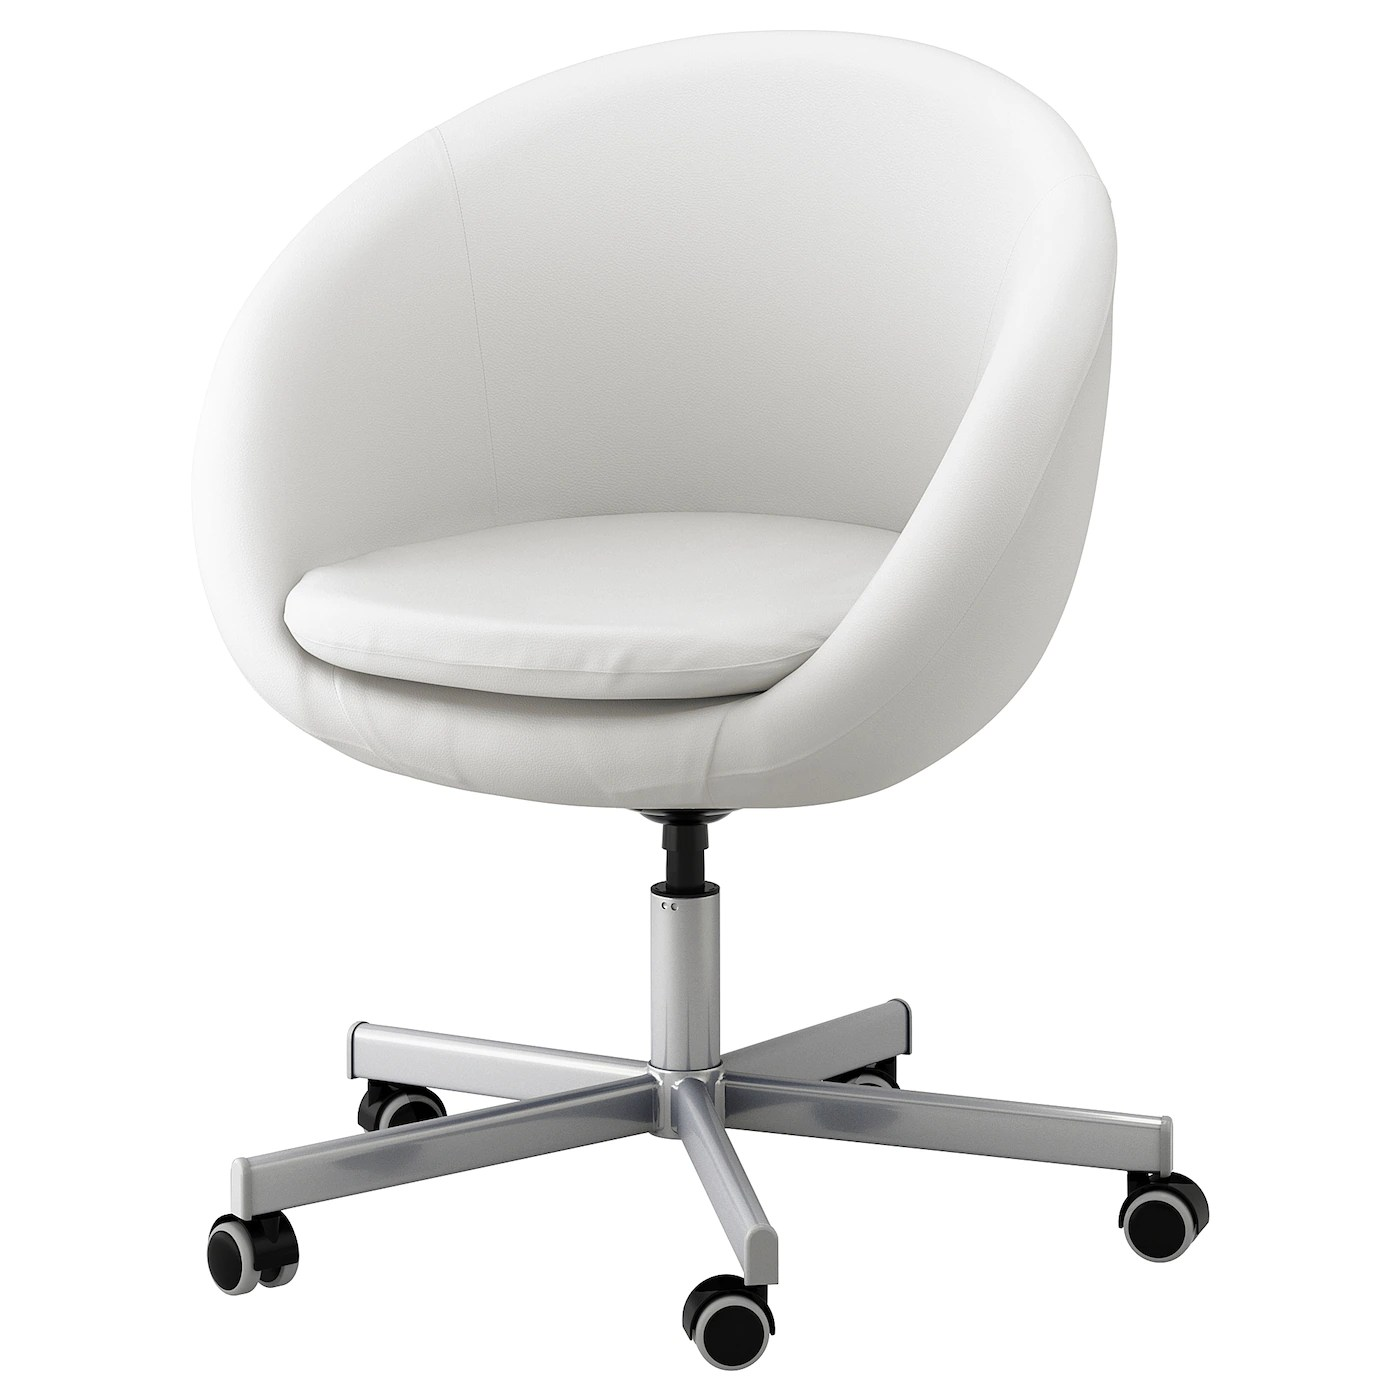 Ikea Desk Chair Skruvsta Swivel Chair Idhult White Ikea